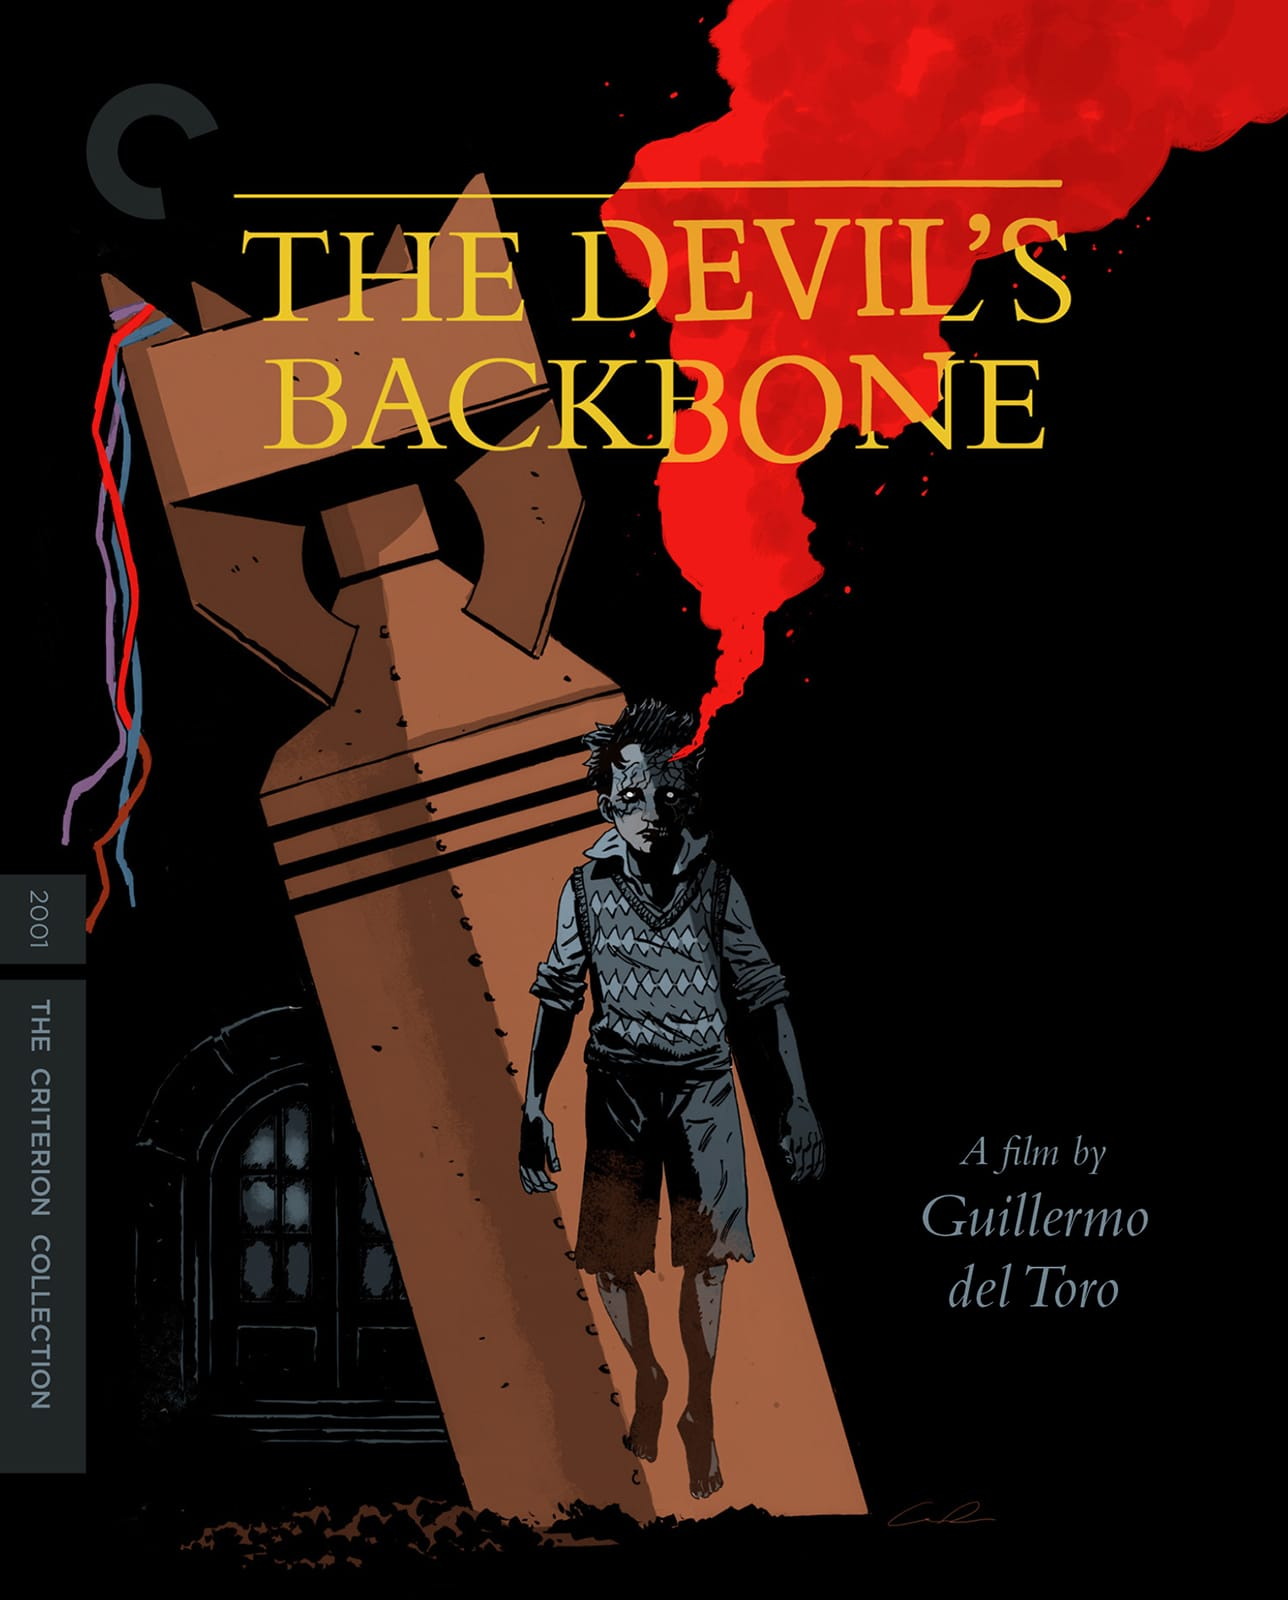 The Devil's Backbone (2001) | The Criterion Collection